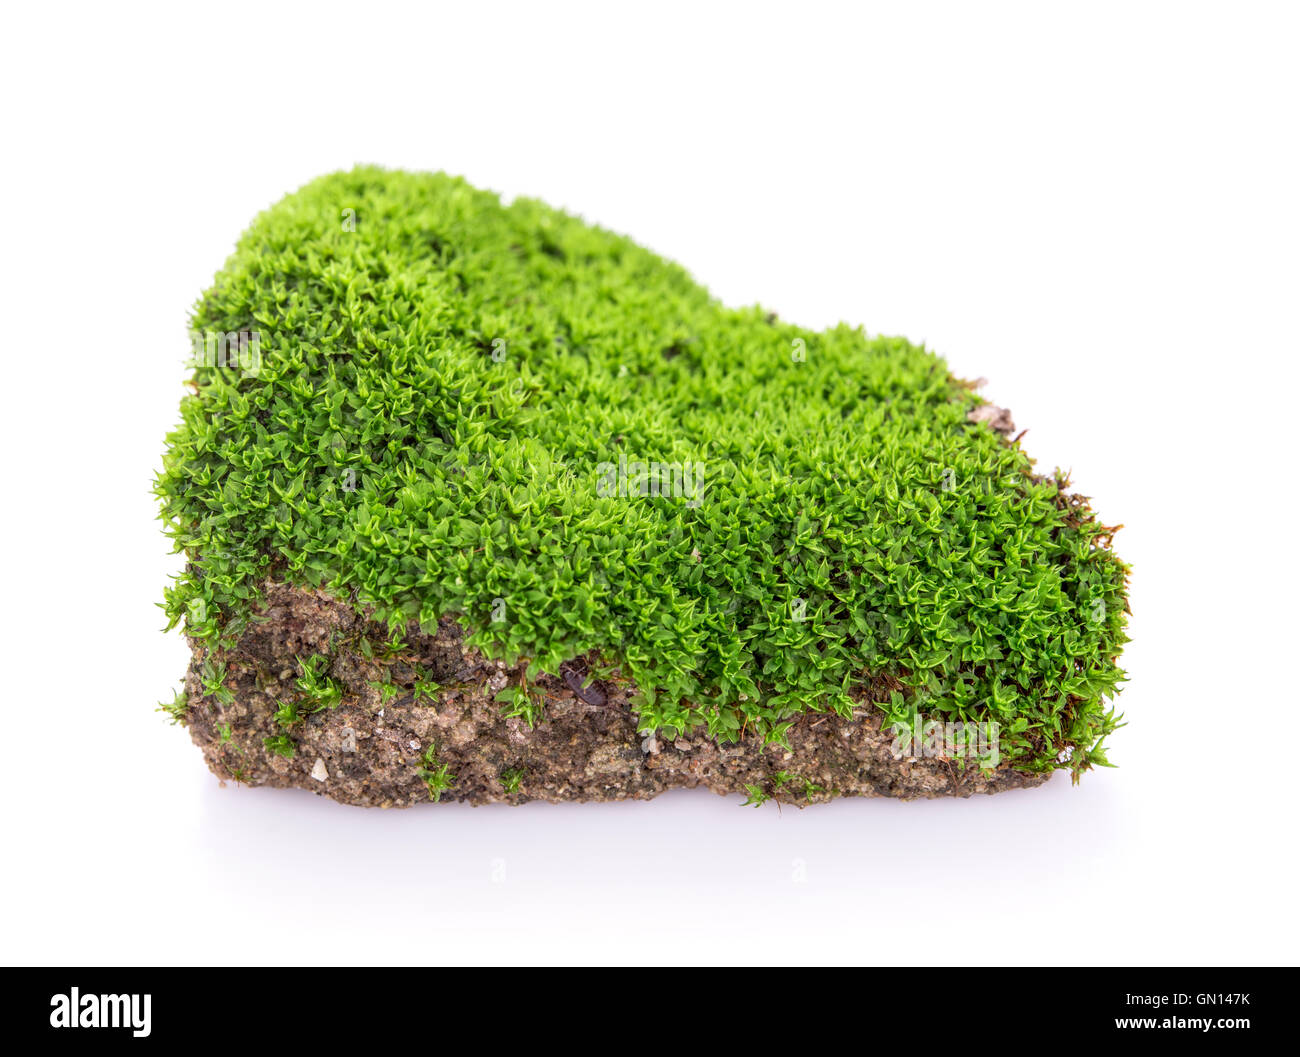 Green Moss Grow On Soil On White Background Stock Photo 116195287